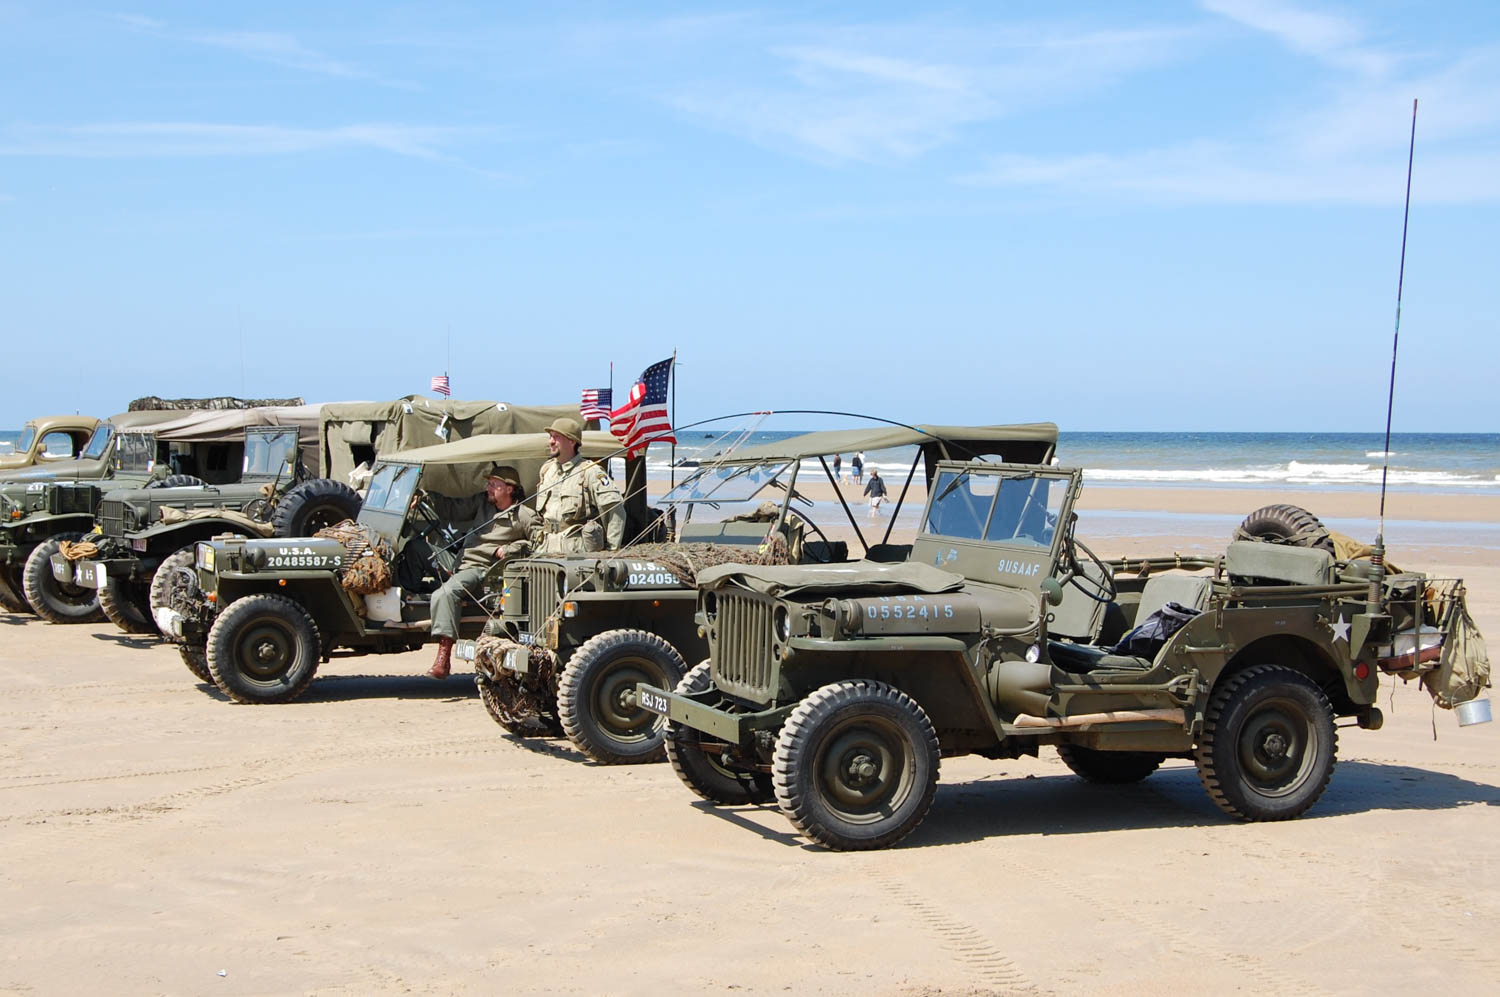 Jeeps gather at low tide in the infamous Dog Green sector of Omaha Beach, depicted in the opening sequences of Saving Private Ryan.